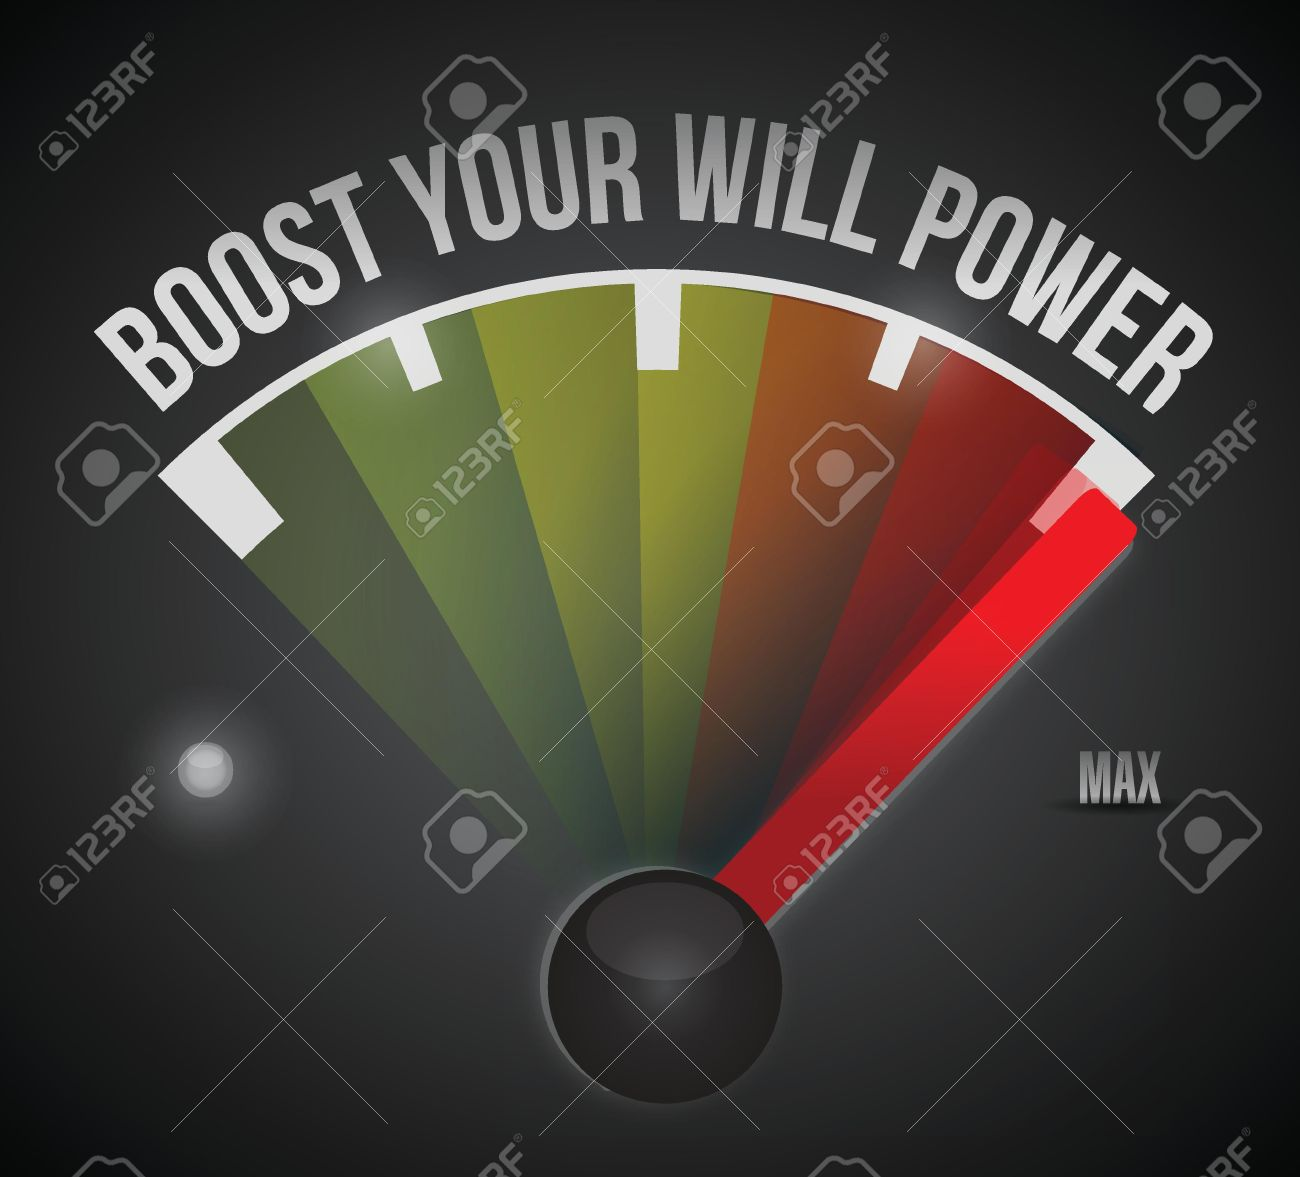 boost your will power to the max illustration design over a black background